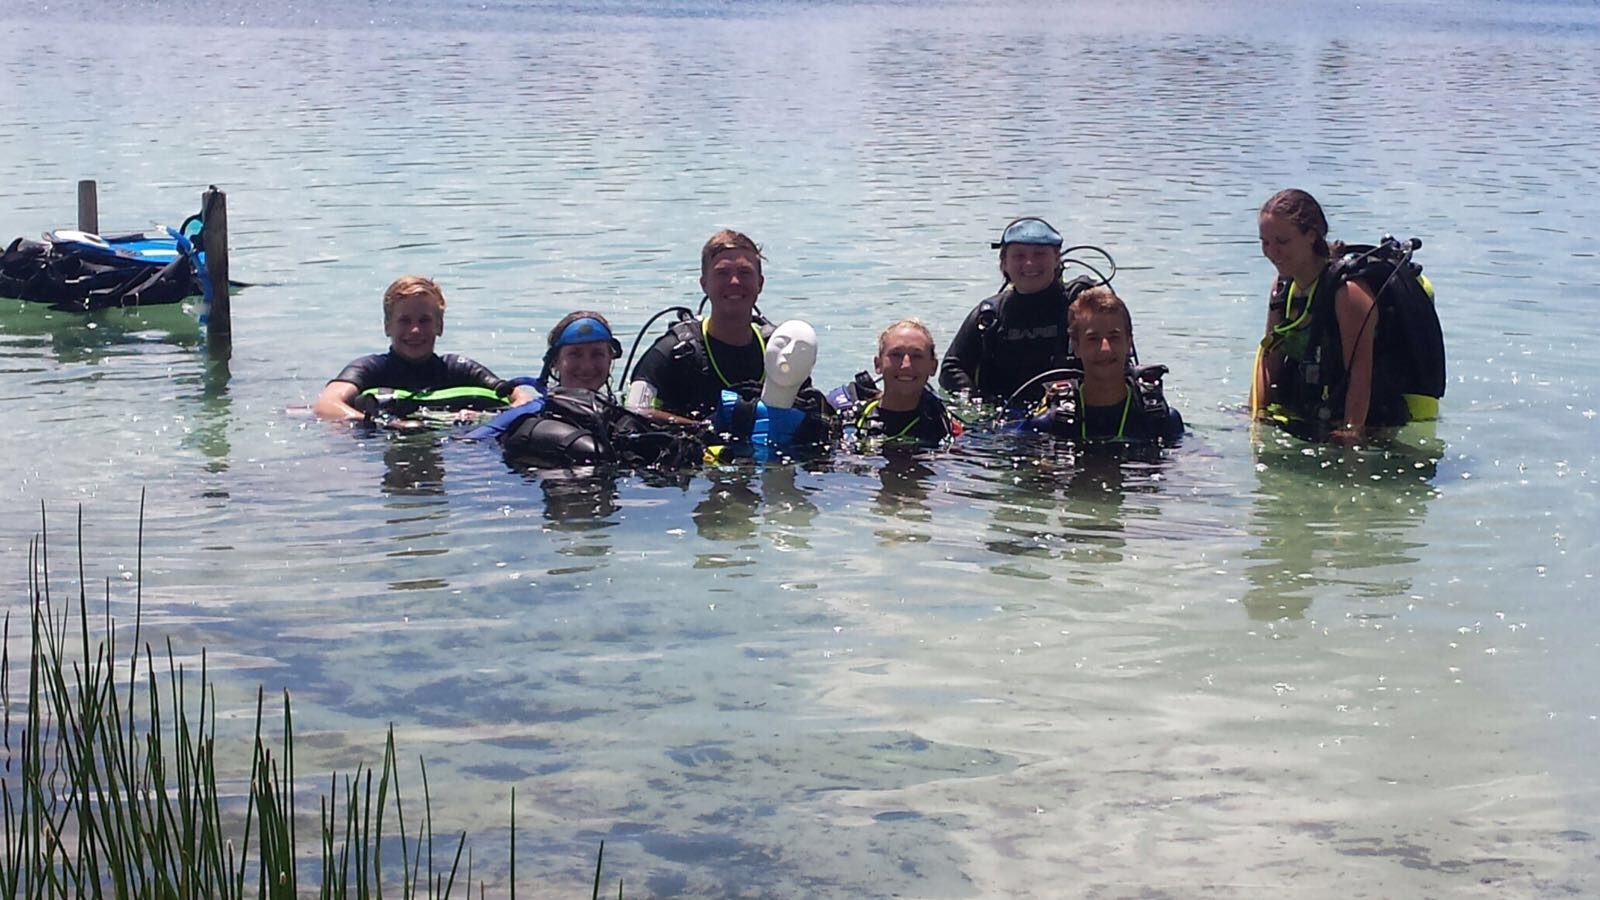 Nauts Build Dive Skills and Confidence with Rescue Training